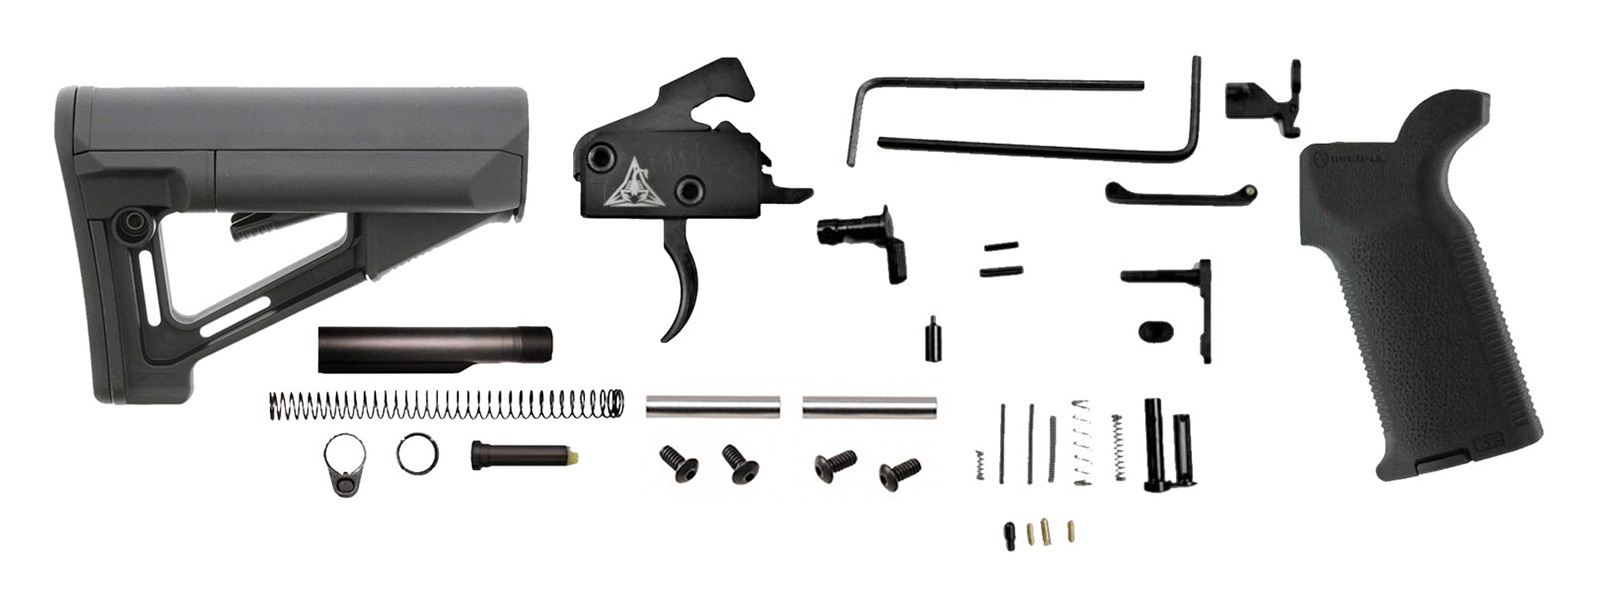 ar15-magpul-str-stock-rise-armament-sst-magpul-moe-k2-grip-antiwalk-pin-lpk-905231